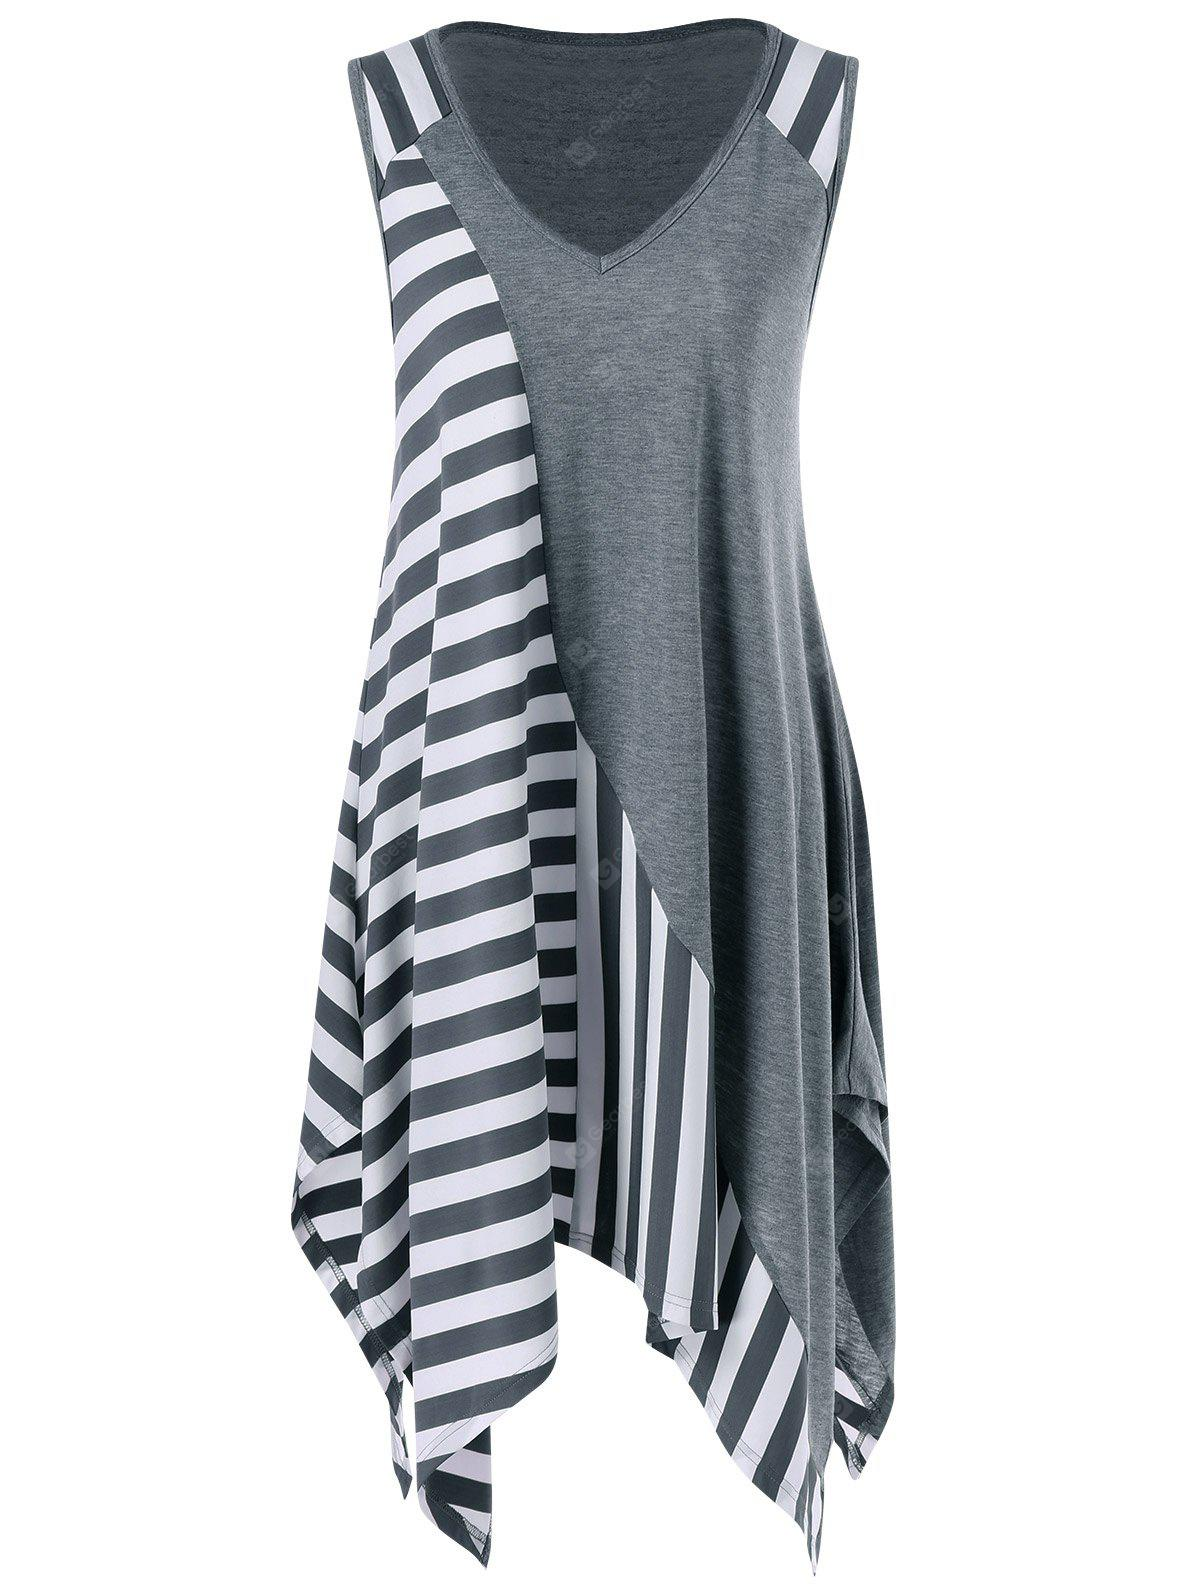 GREY AND WHITE 2XL Striped Long Handkerchief Sleeveless Flowy T-Shirt